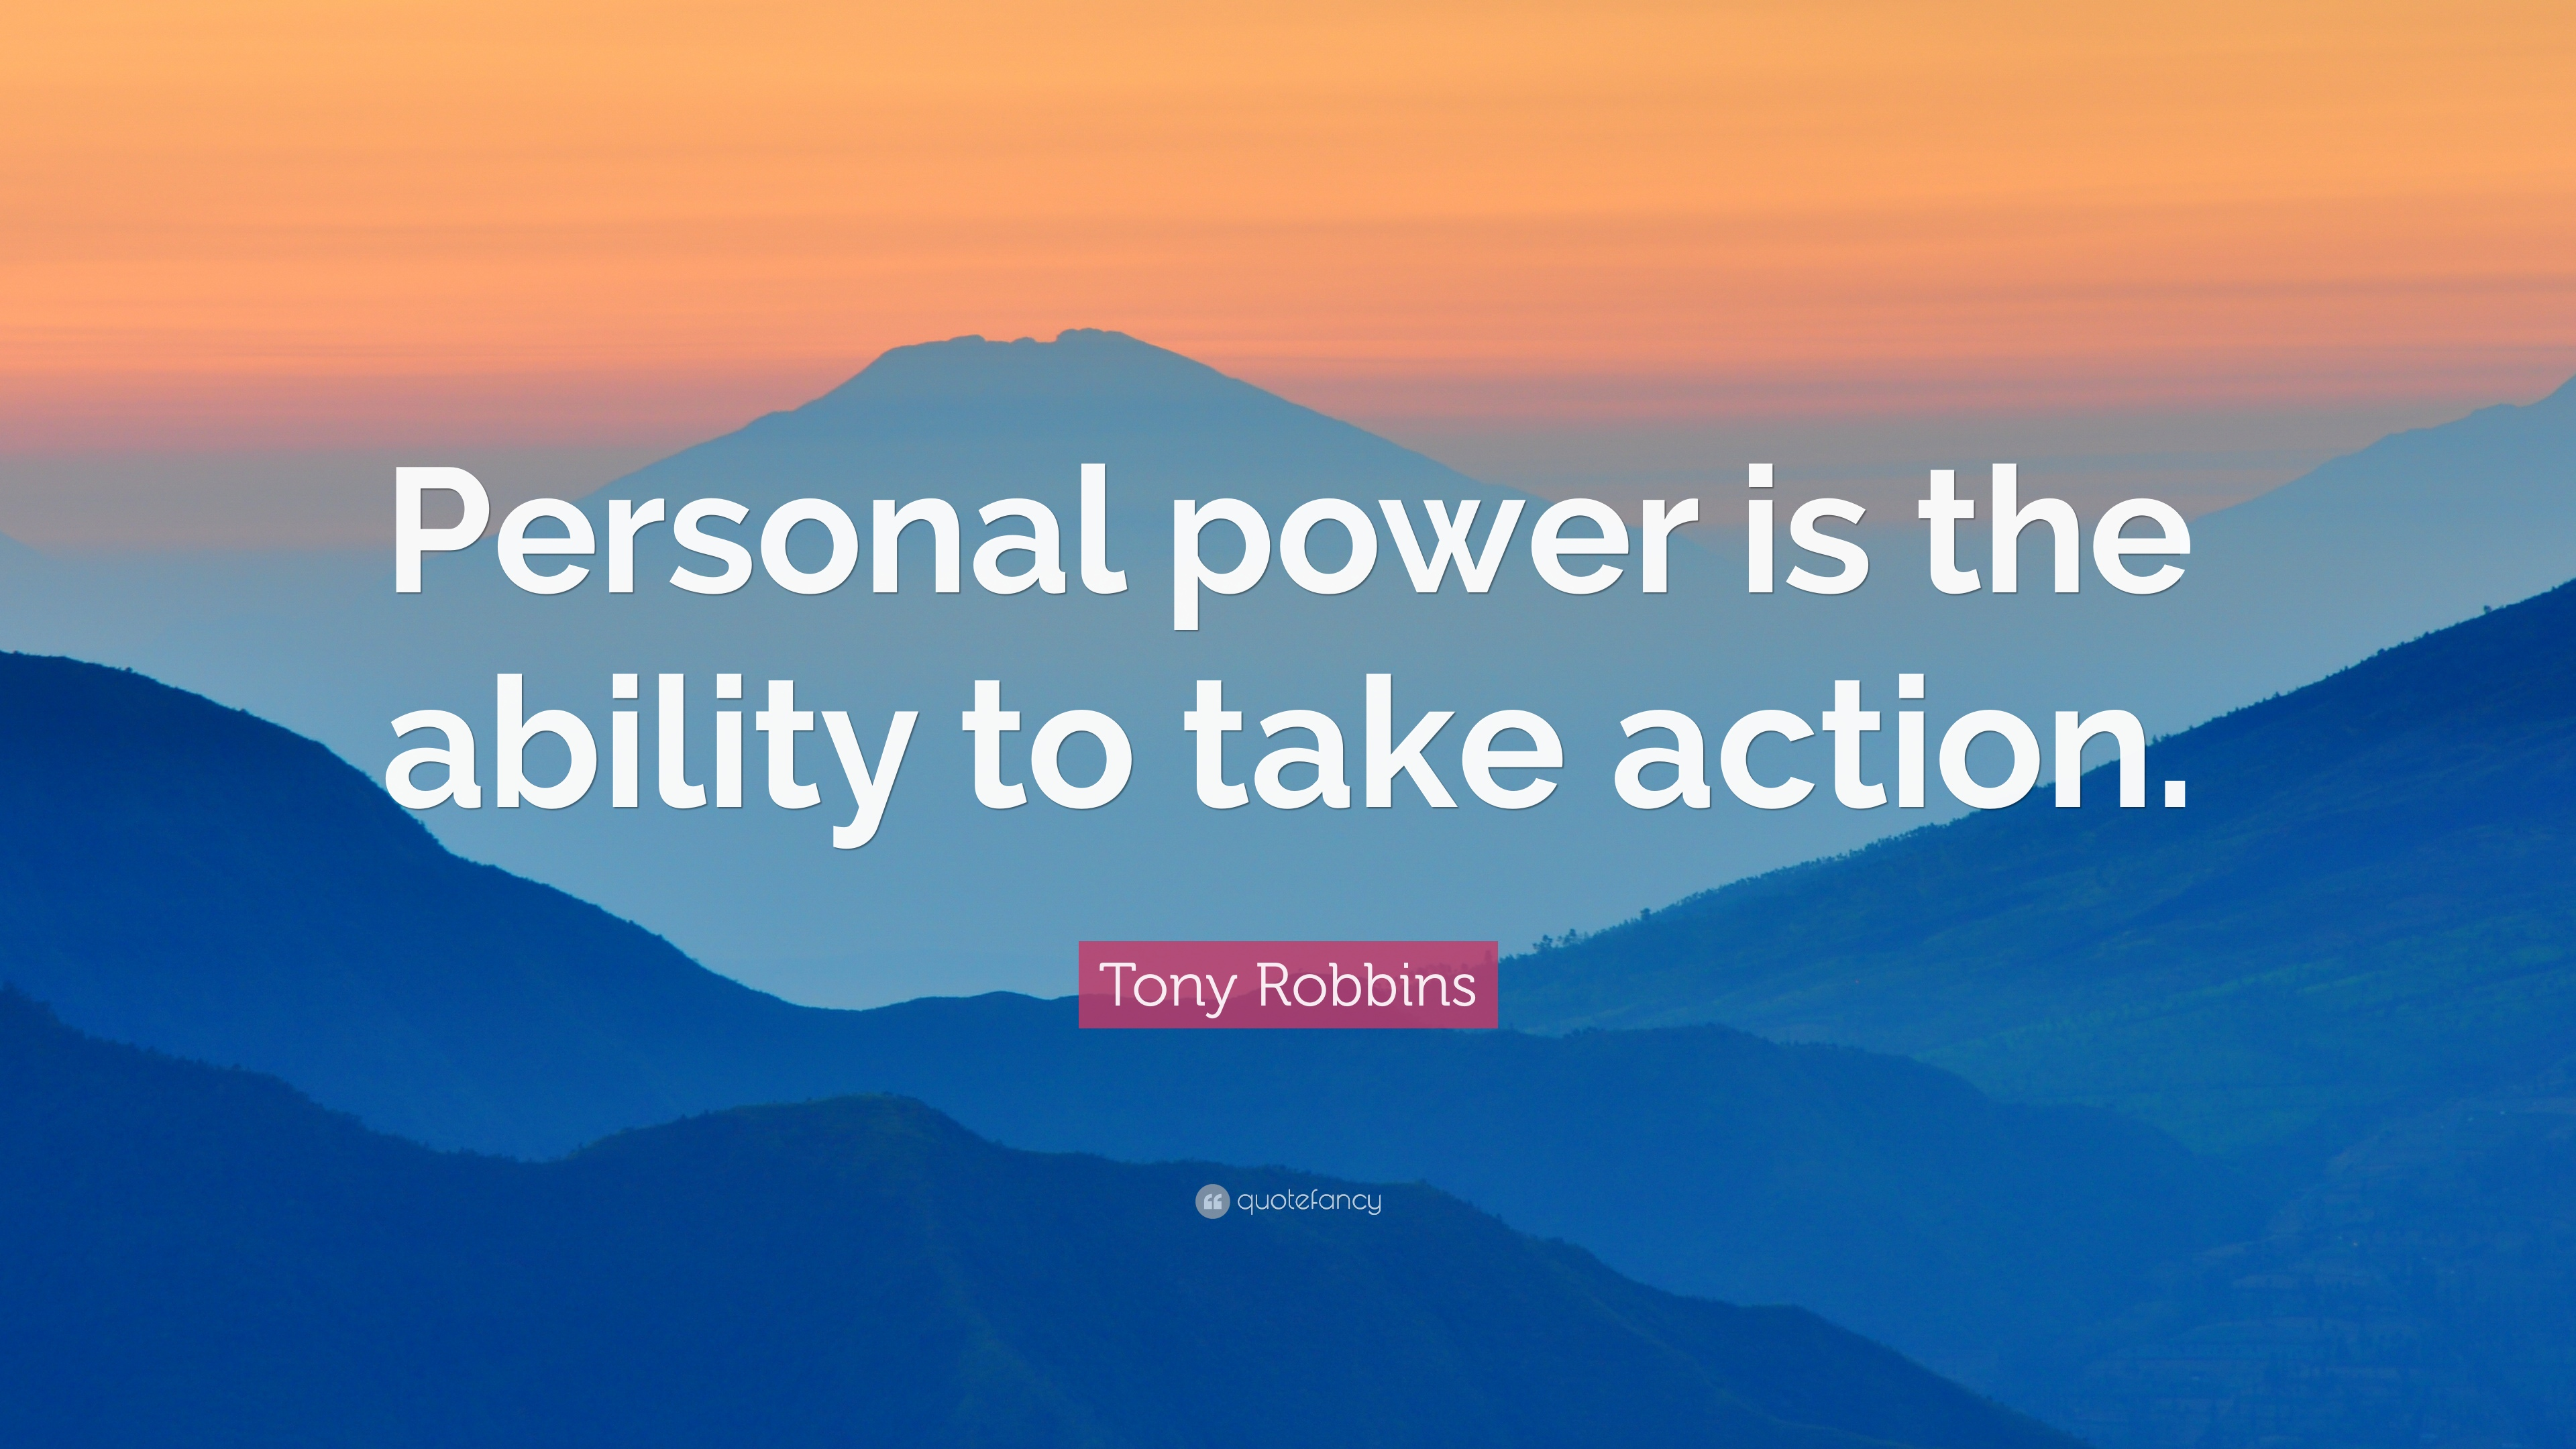 tony robbins quote personal power is the ability to take action tony robbins quote personal power is the ability to take action